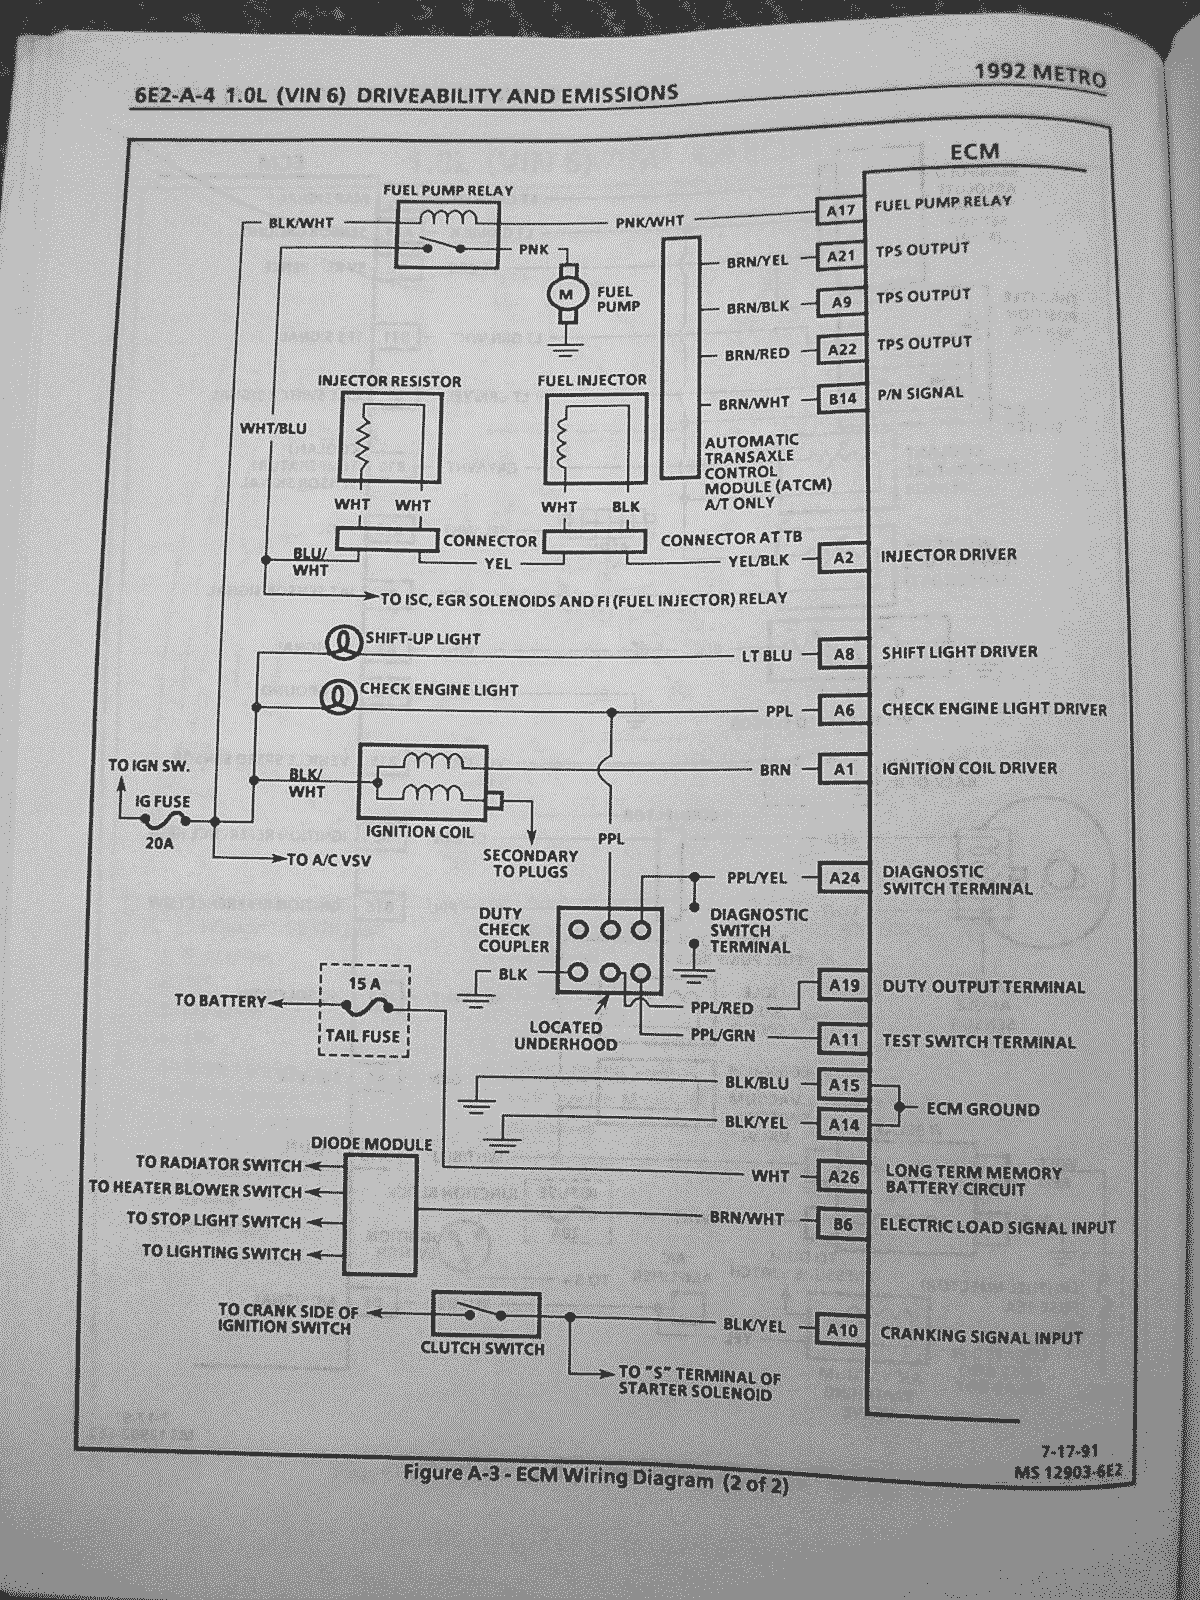 6e2 a 4 geo metro and suzuki swift wiring diagrams metroxfi com 89 GTI Door Cards at suagrazia.org